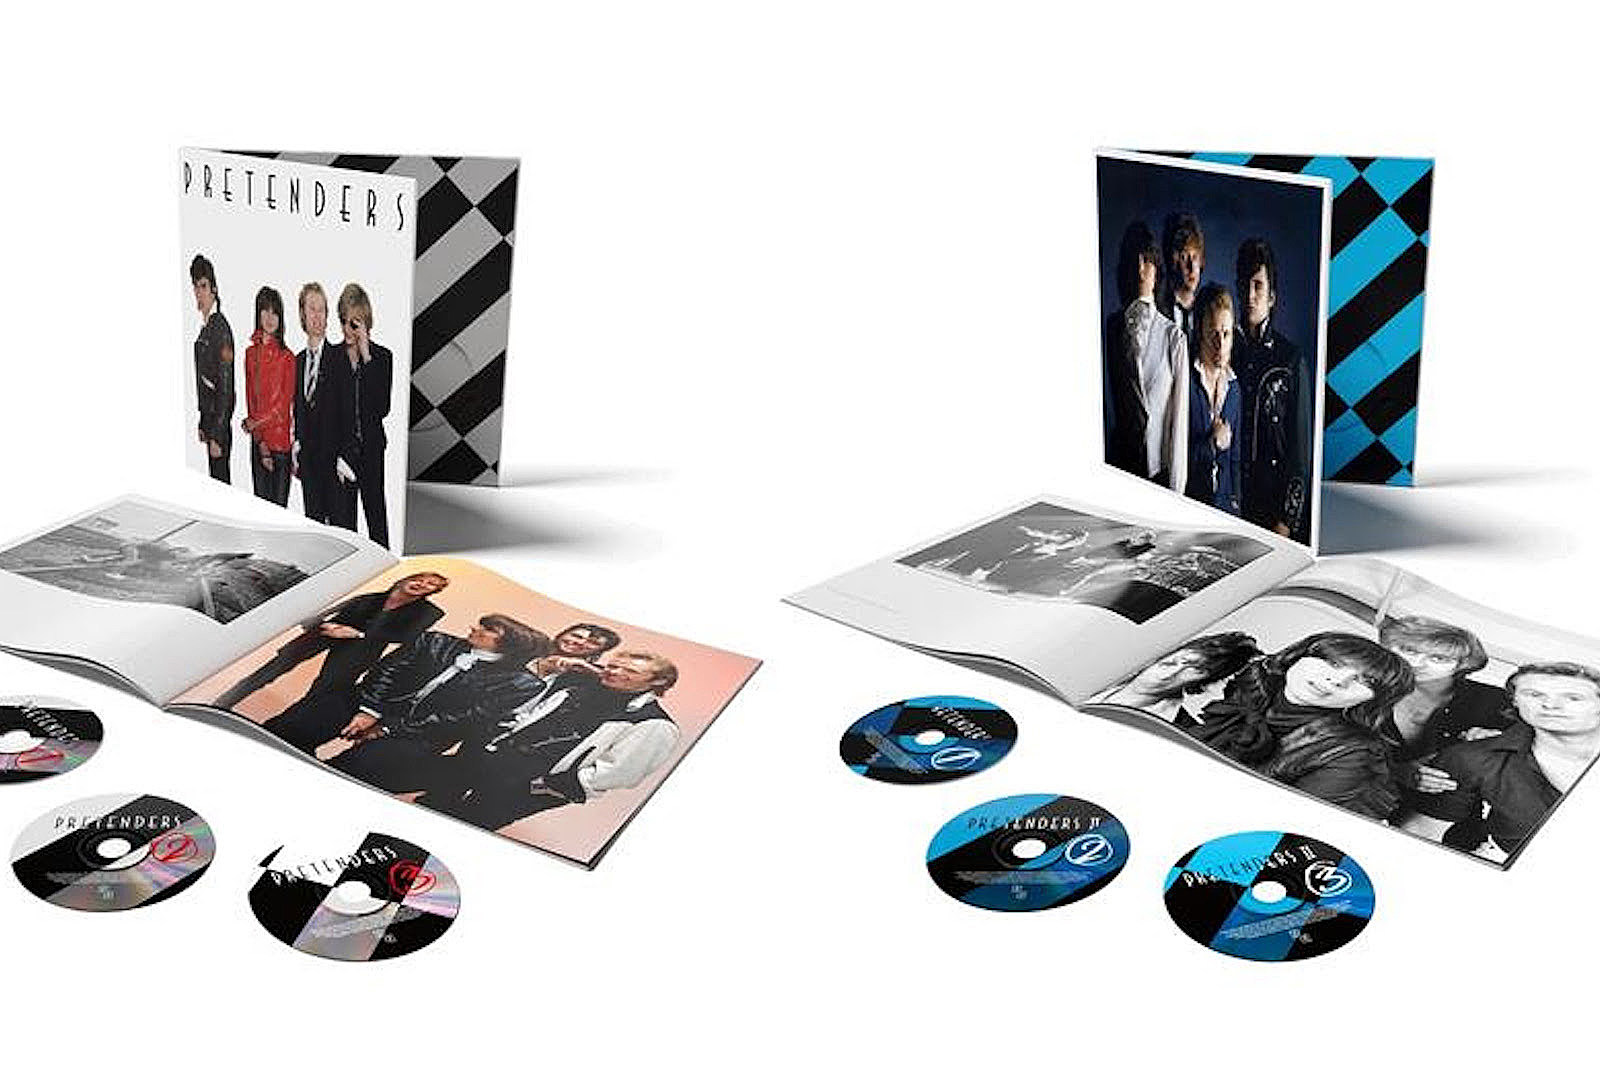 Pretenders to Release Deluxe Editions of First Two Albums